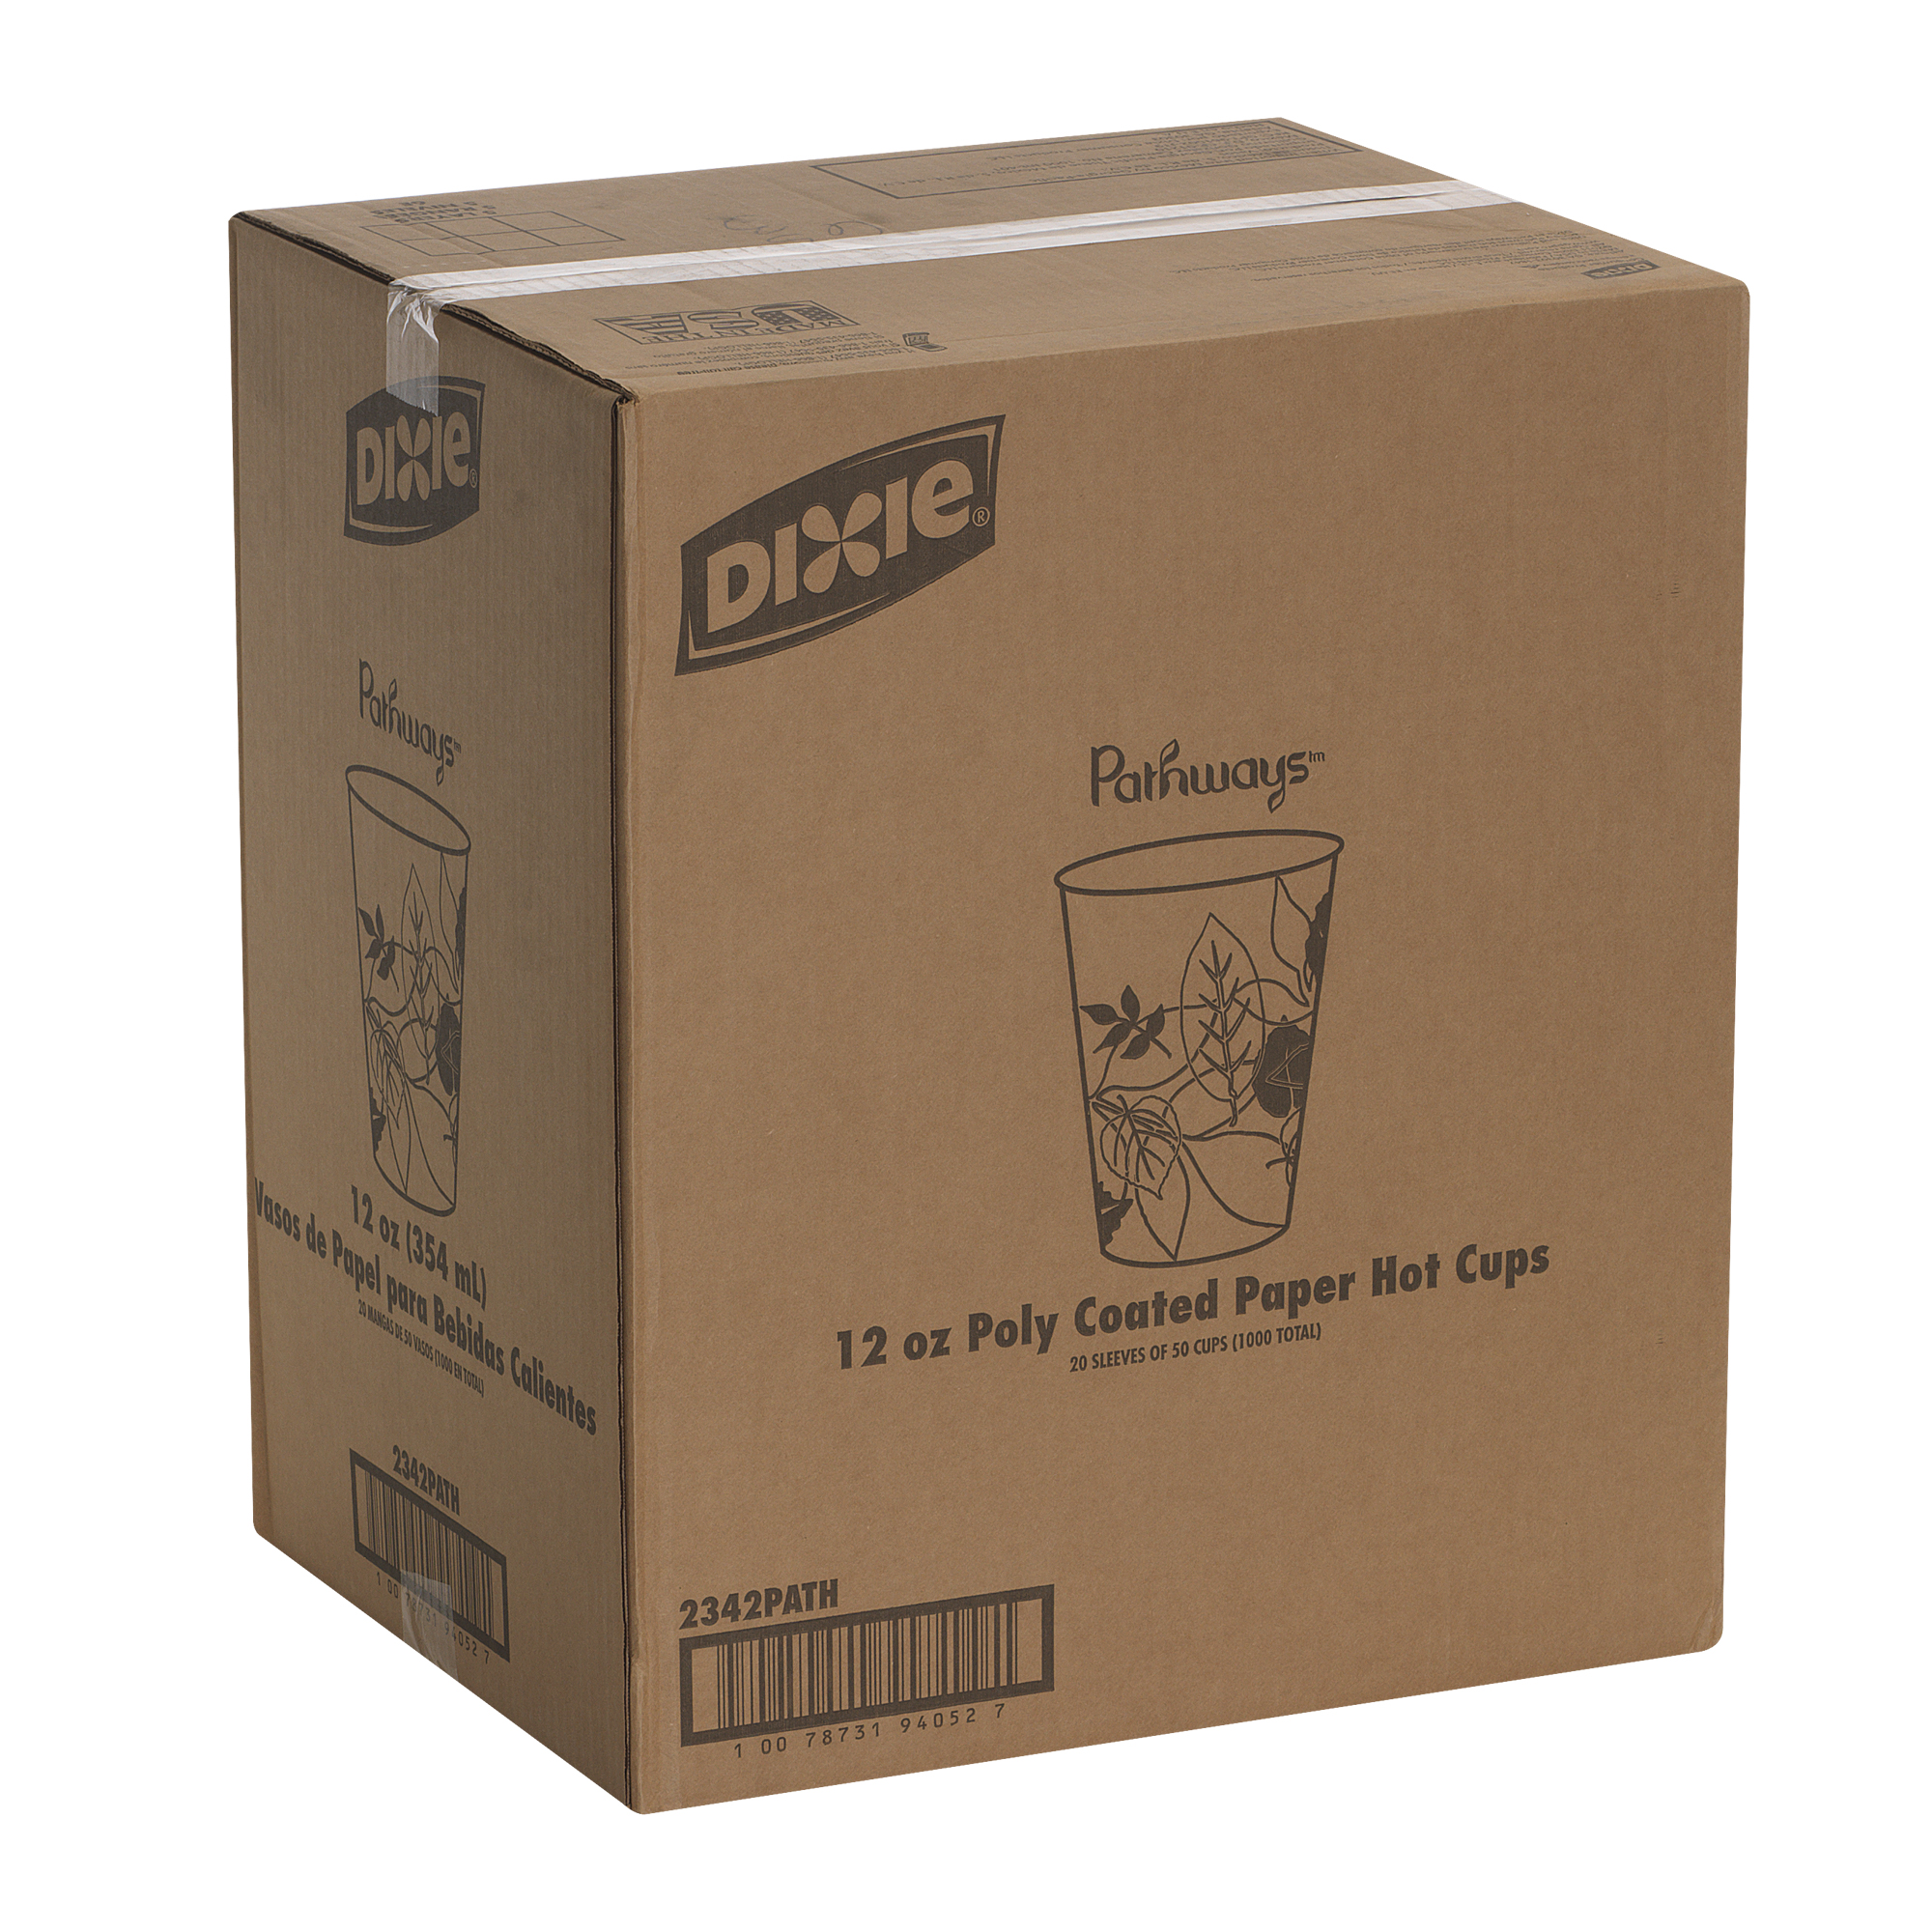 Terrific Dixie 2342Path 12 Oz Paper Hot Coffee Cup By Gp Pro Georgia Pacific Pathways 500 Count 25 Cups Per Sleeve 20 Sleeves Per Case Andrewgaddart Wooden Chair Designs For Living Room Andrewgaddartcom